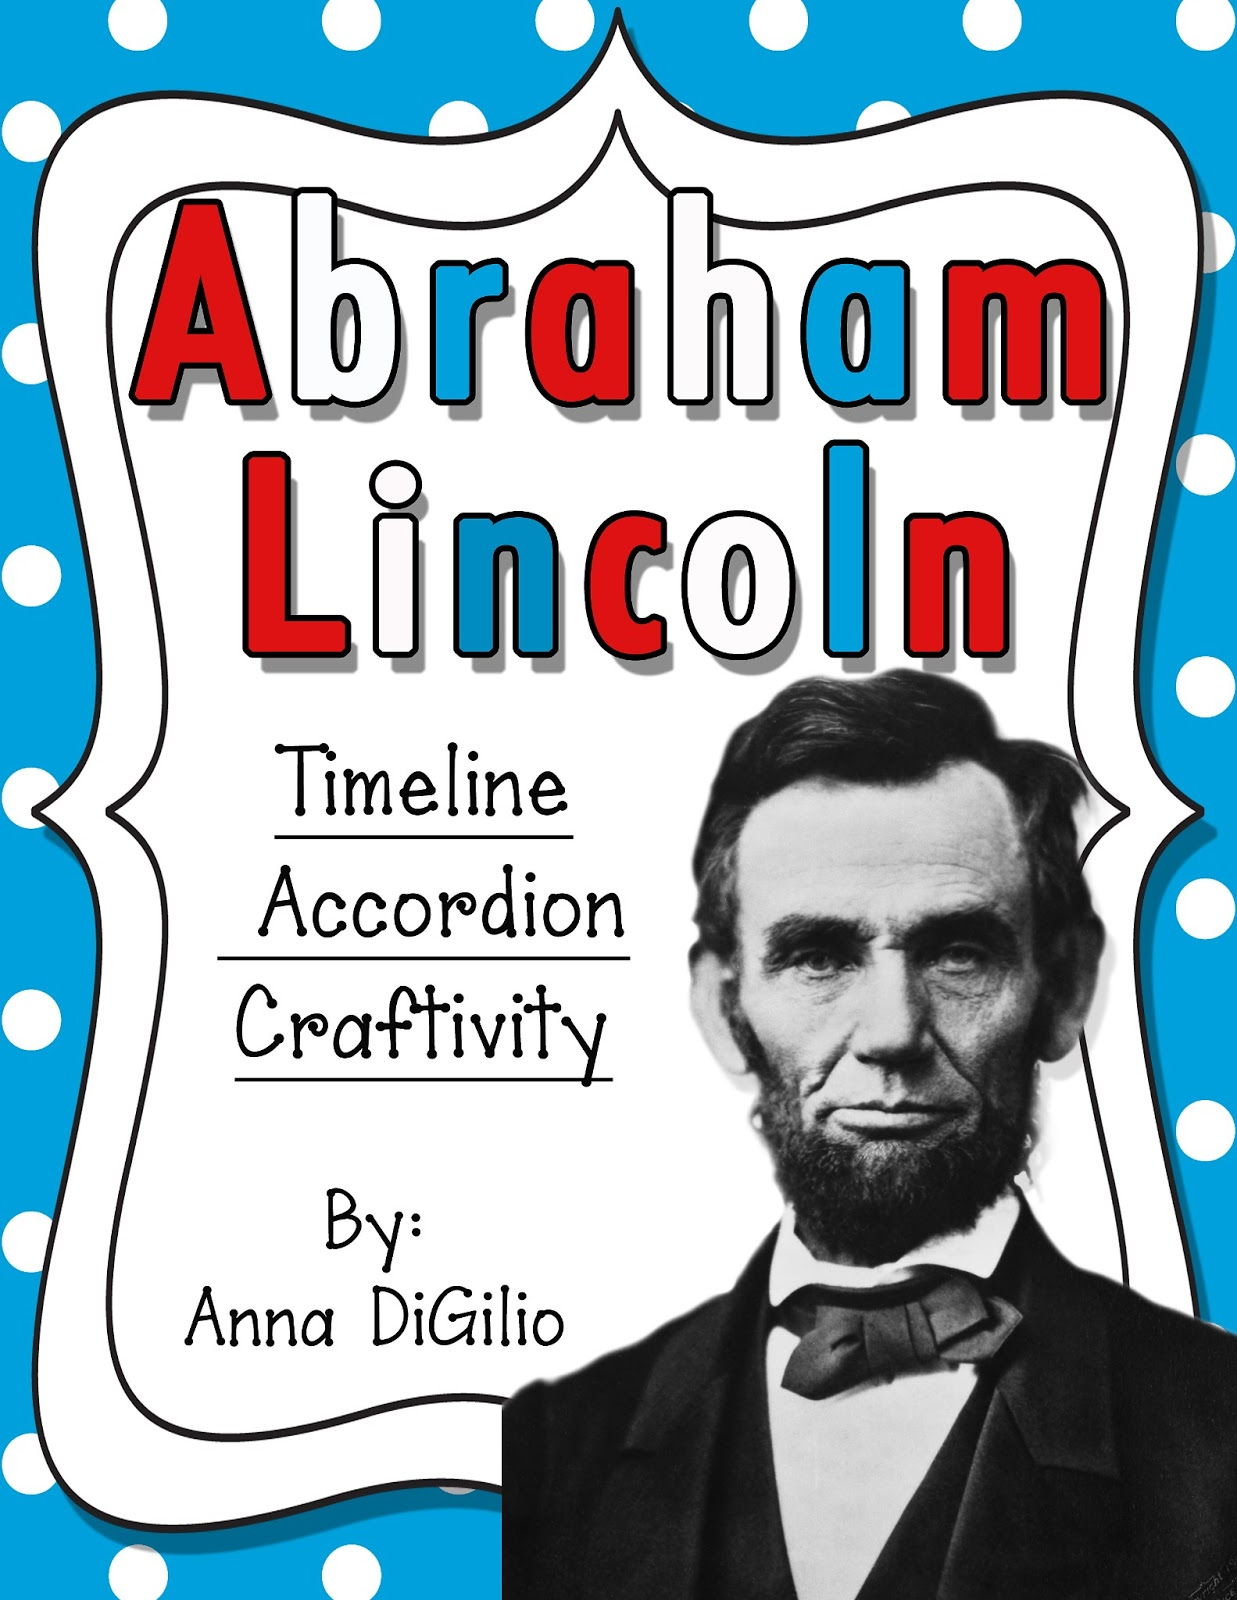 abraham lincoln timeline Abraham lincoln timeline from abraham s birth in 1809 to his death in 1865, this abraham lincoln timeline points out the critical elements of his life.